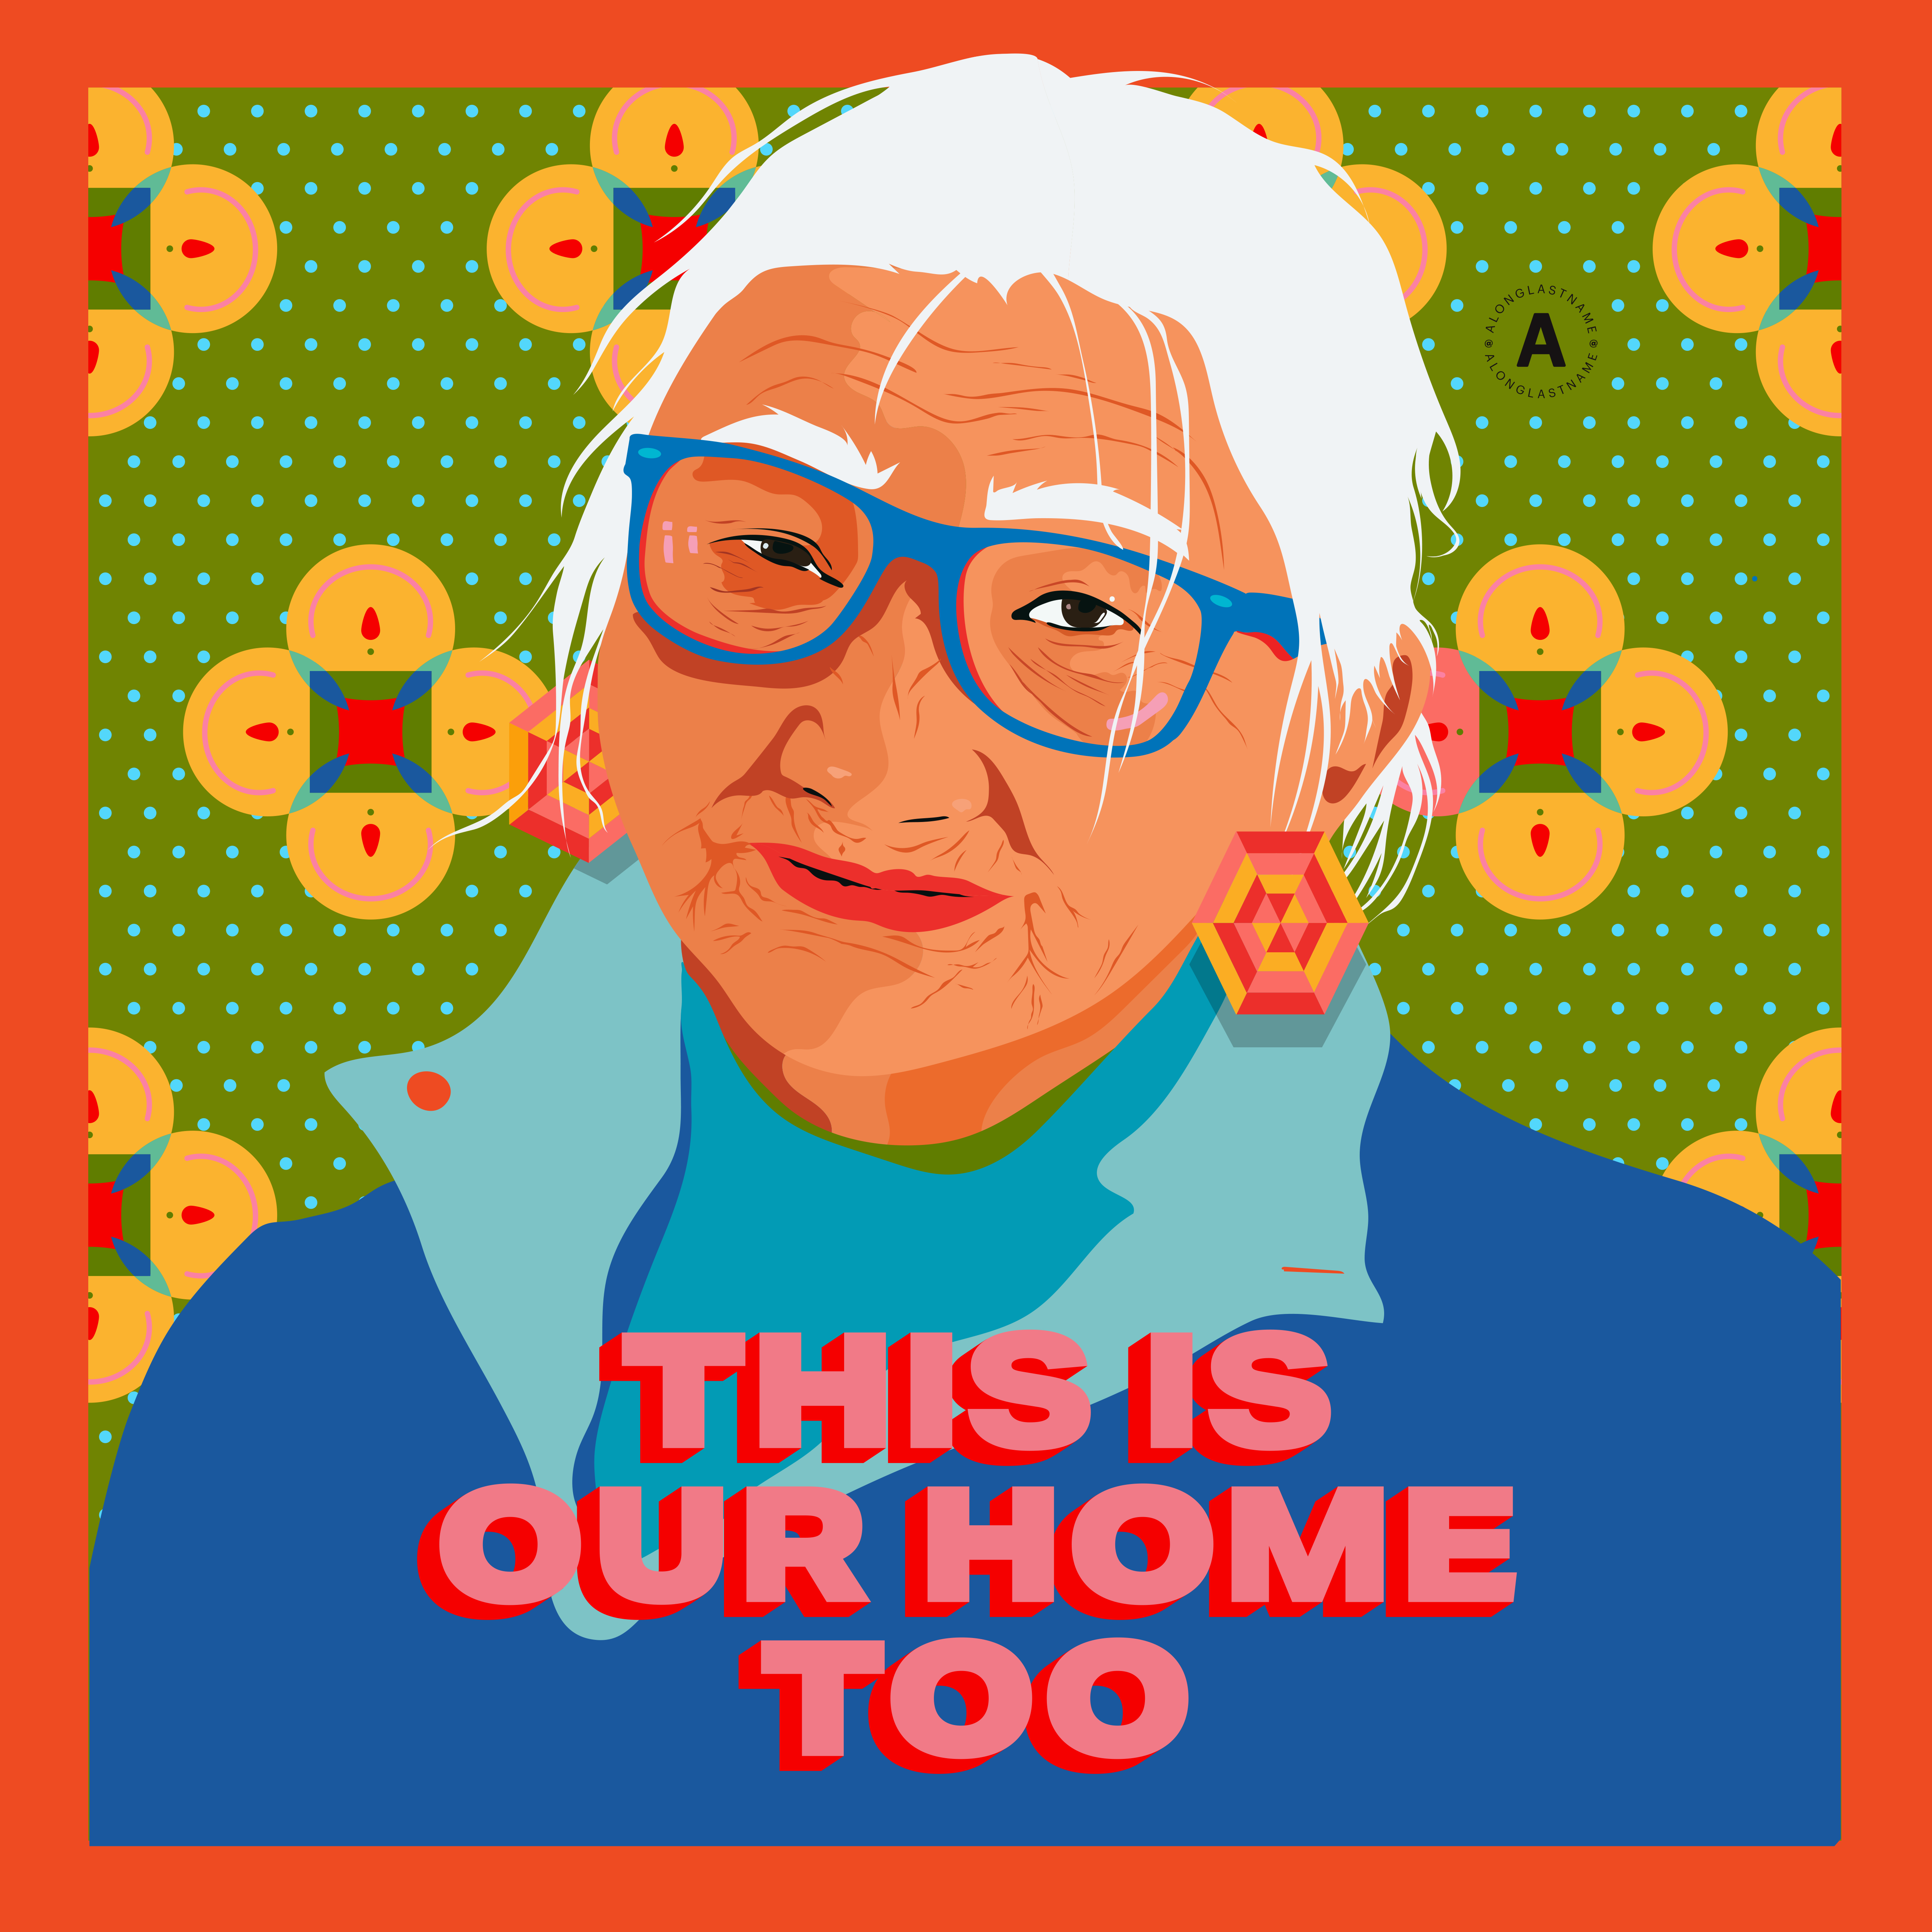 A green background with light blue polka dots and yellow flowers with an orange border. An Asian American woman is in the center in a blue shirt and glasses, smiling with white hair. The text below states,